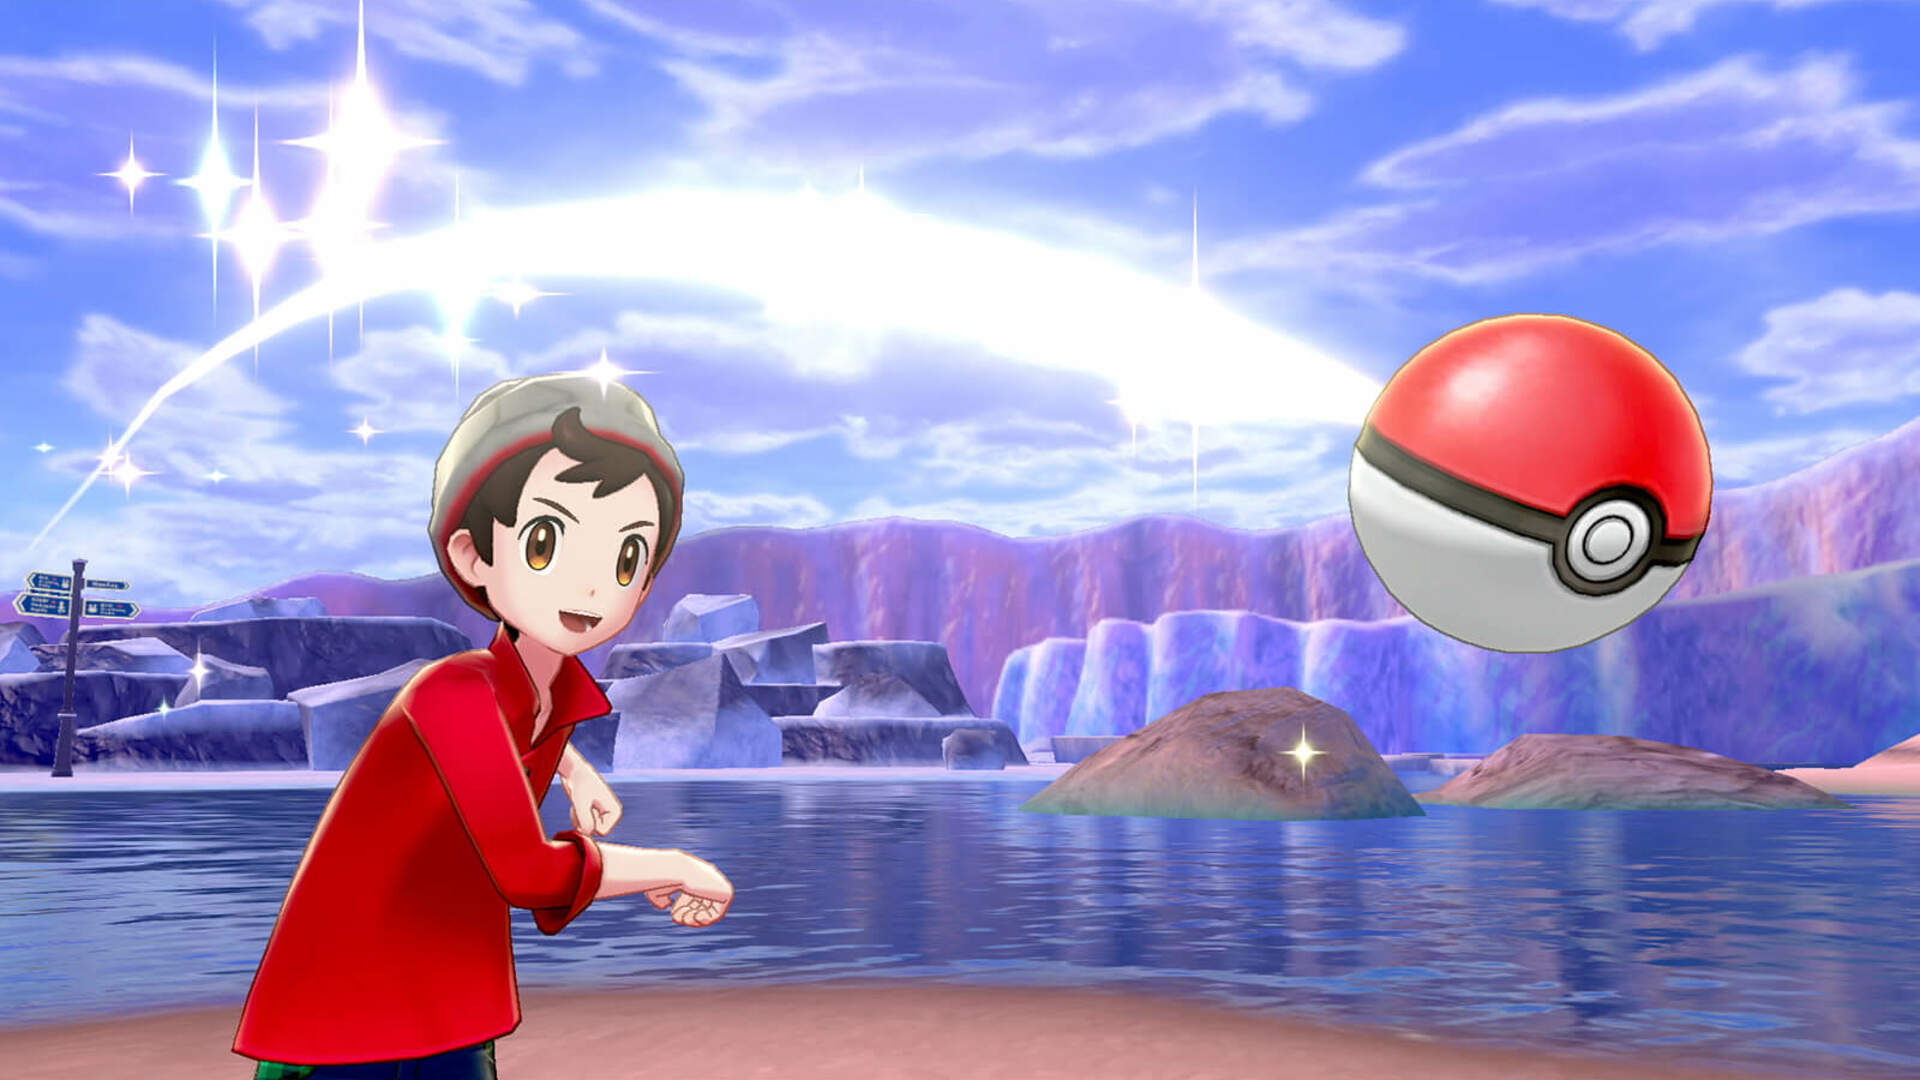 Pokemon Sword and Shield: How to Use the PC Box Link